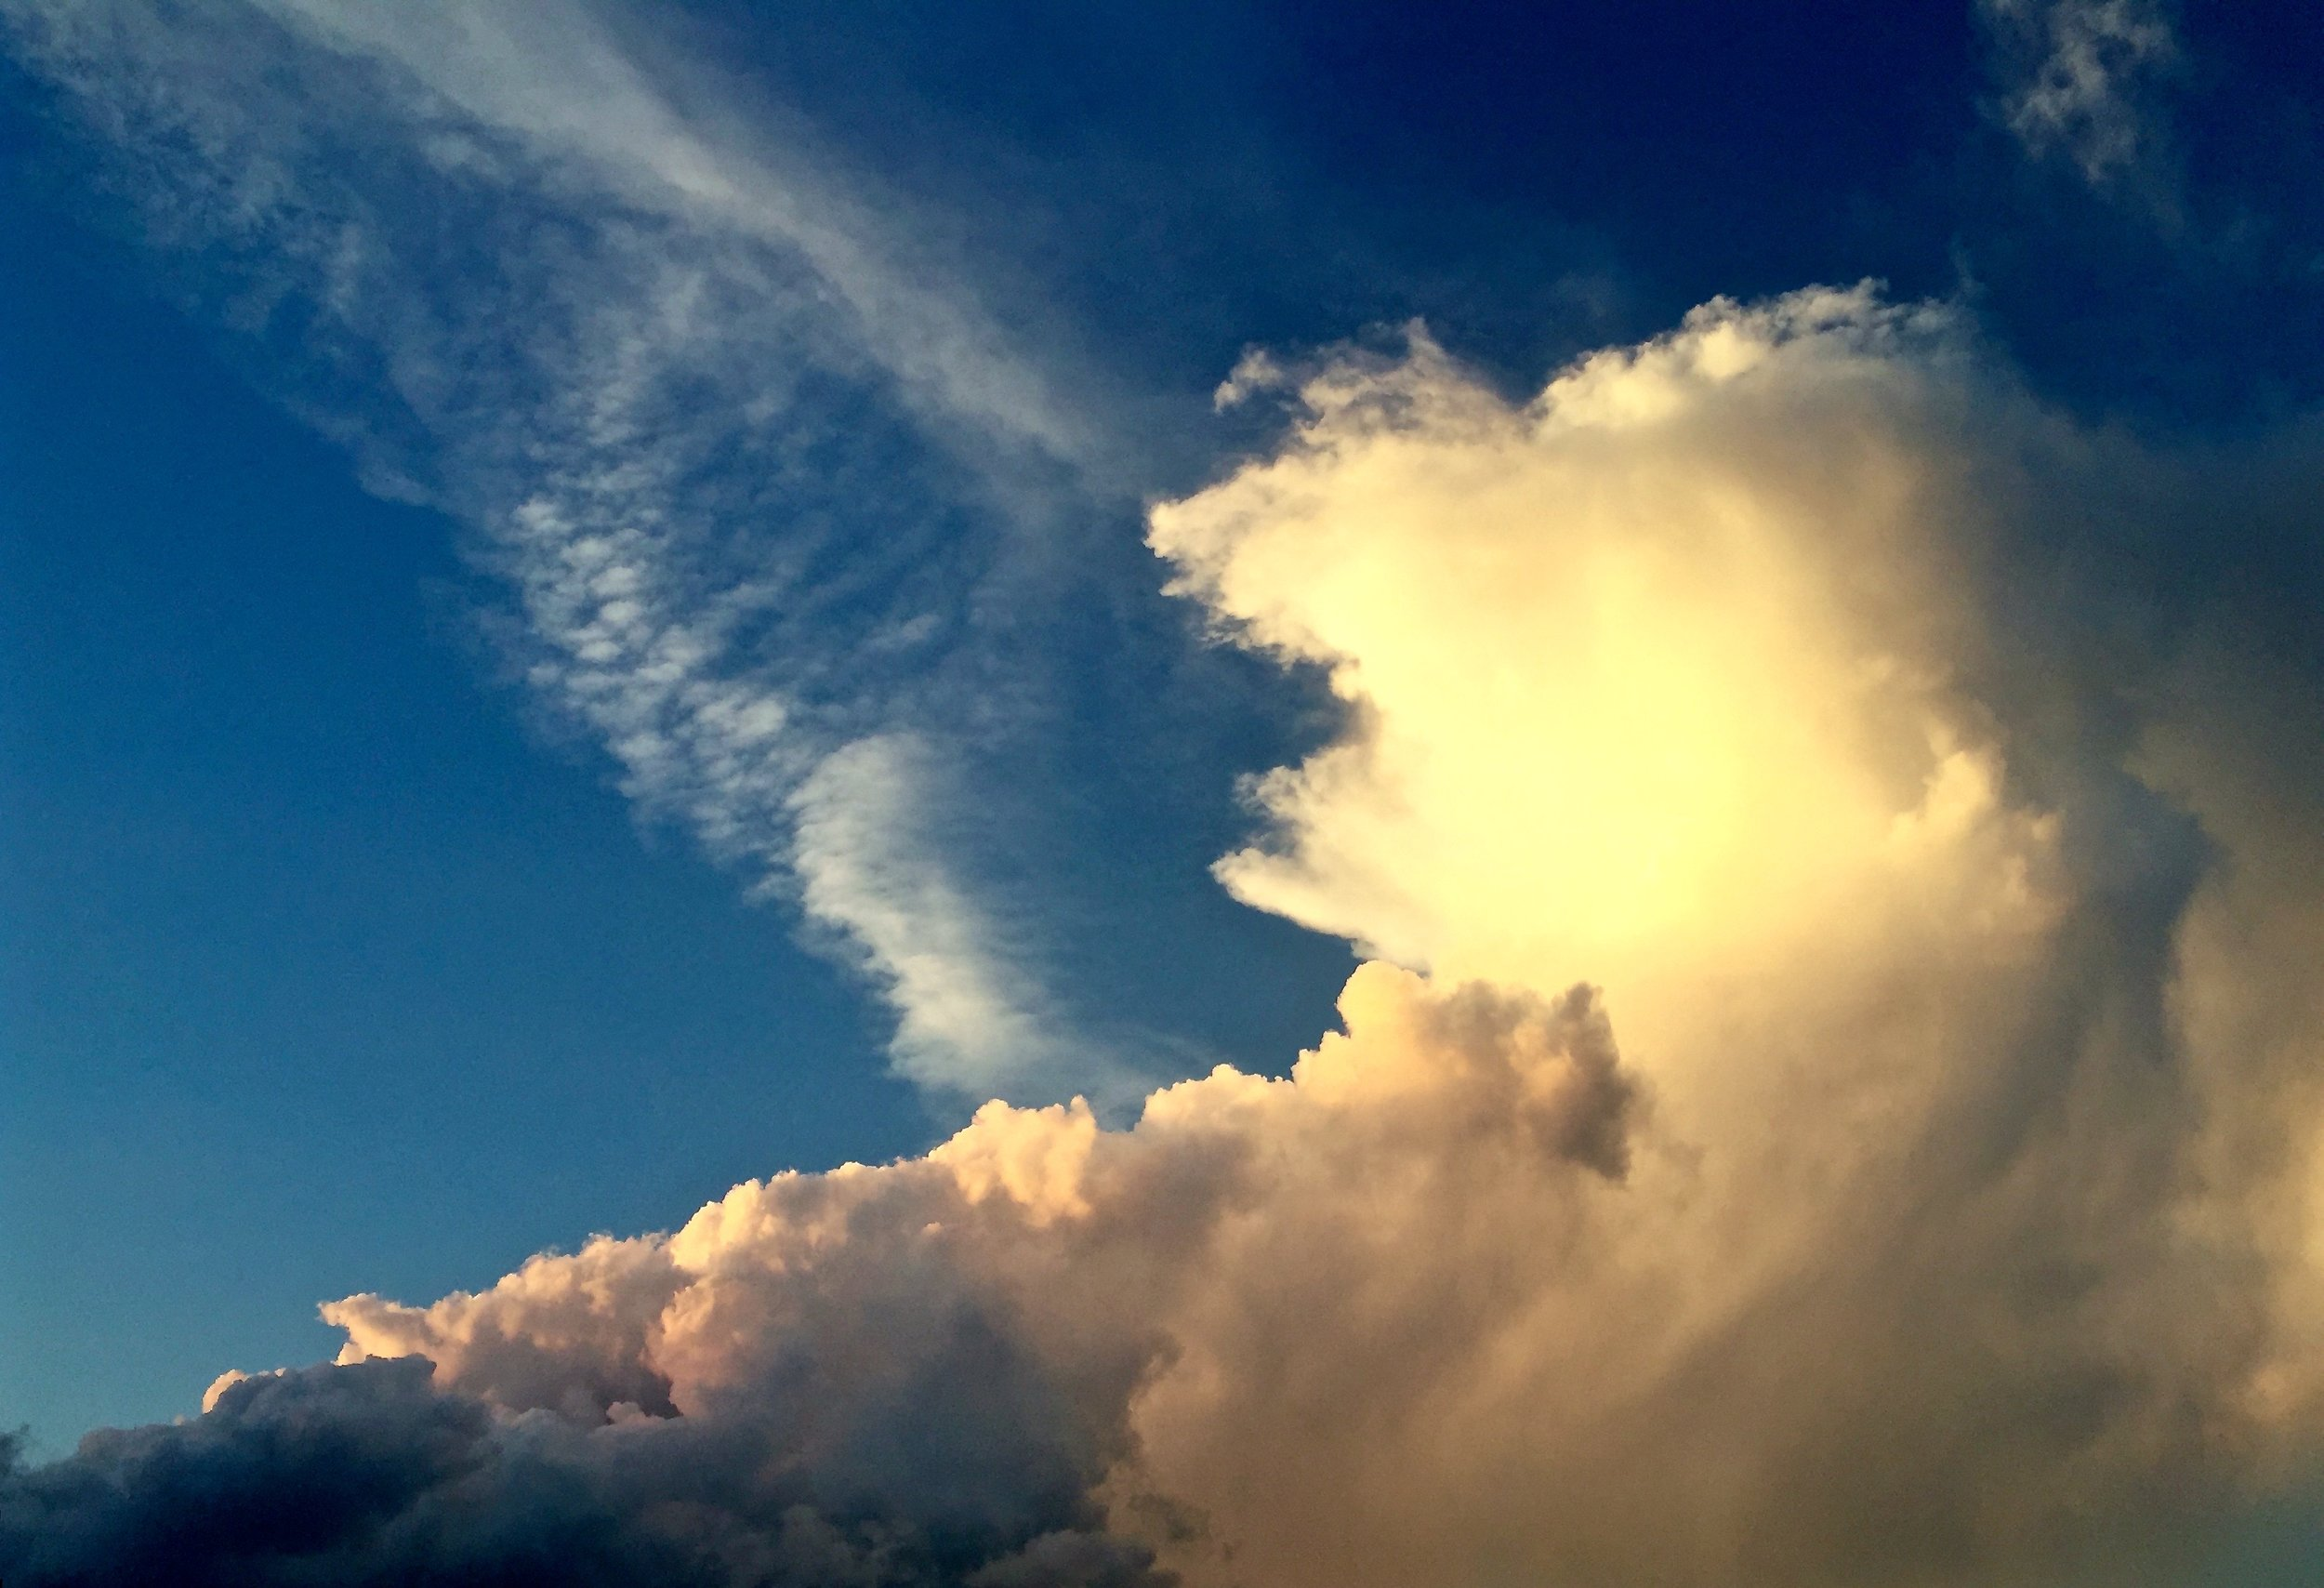 We were greeted by an awe-inspiring cloud display upon our arrival.